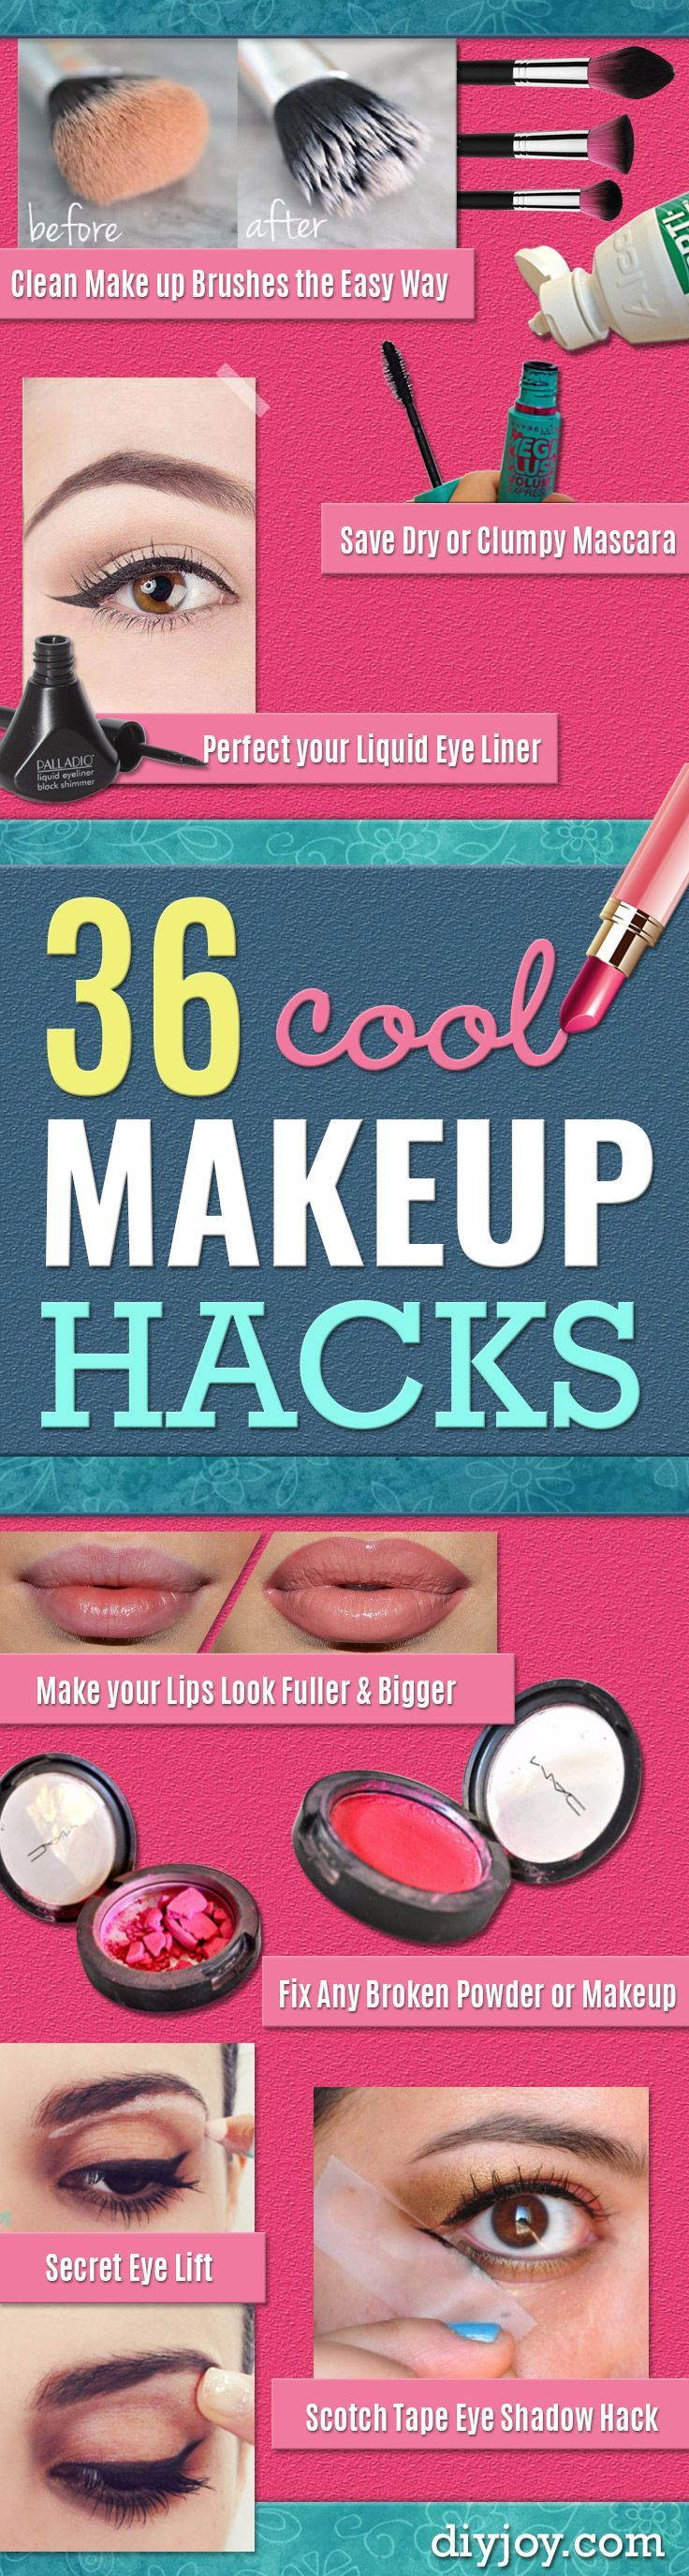 Cool diy makeup hacks for quick and easy beauty ideas how to fix cool diy makeup hacks for quick and easy beauty ideas how to fix broken makeup tips and tricks for mascara and eye liner lipstick and foundation solutioingenieria Images